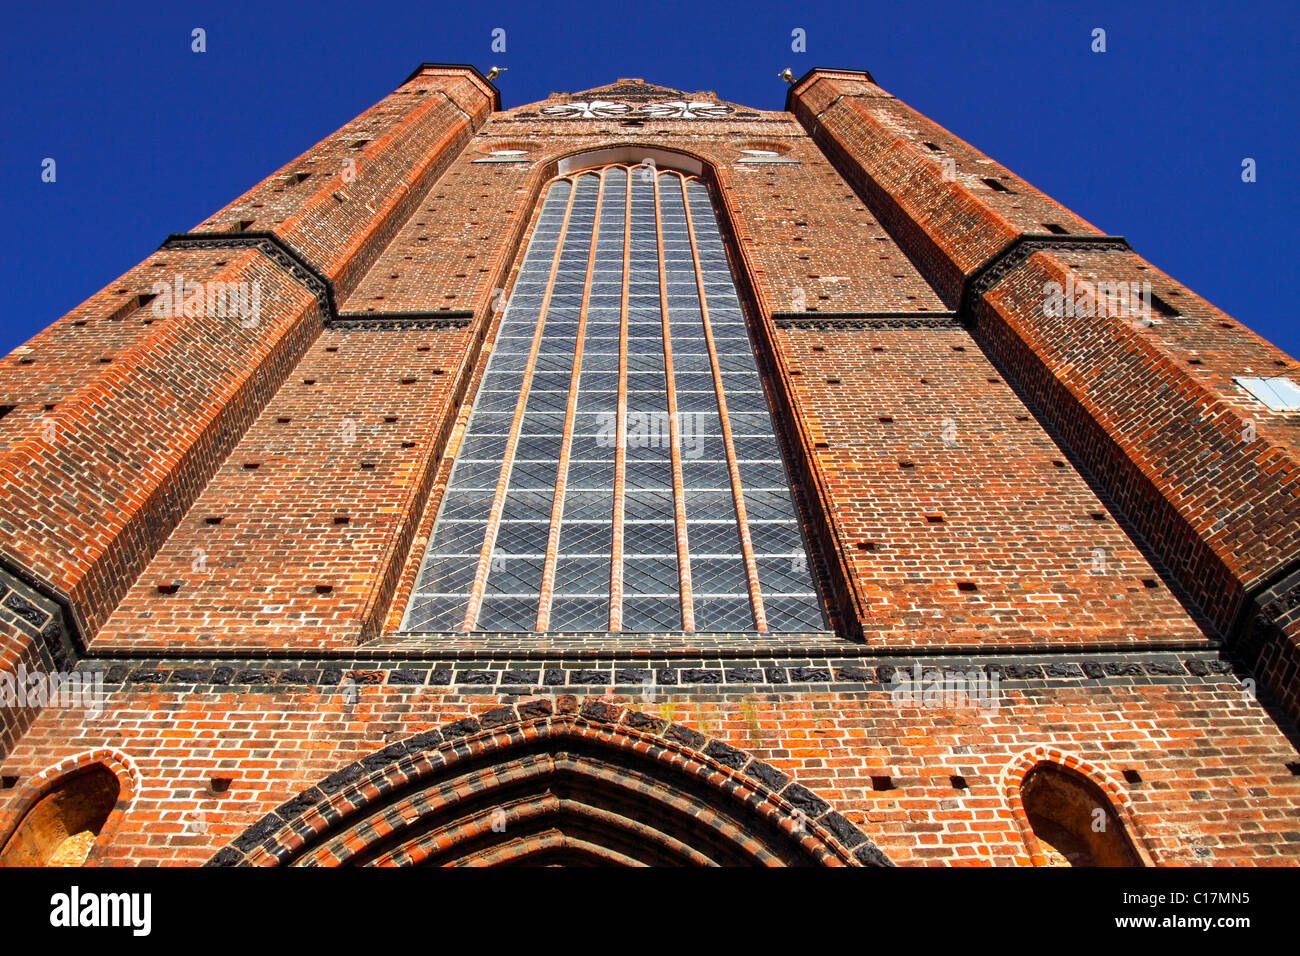 Historic St. George's Church in the Old Town of Wismar, UNESCO World Heritage Site, Mecklenburg-Western Pomerania - Stock Image